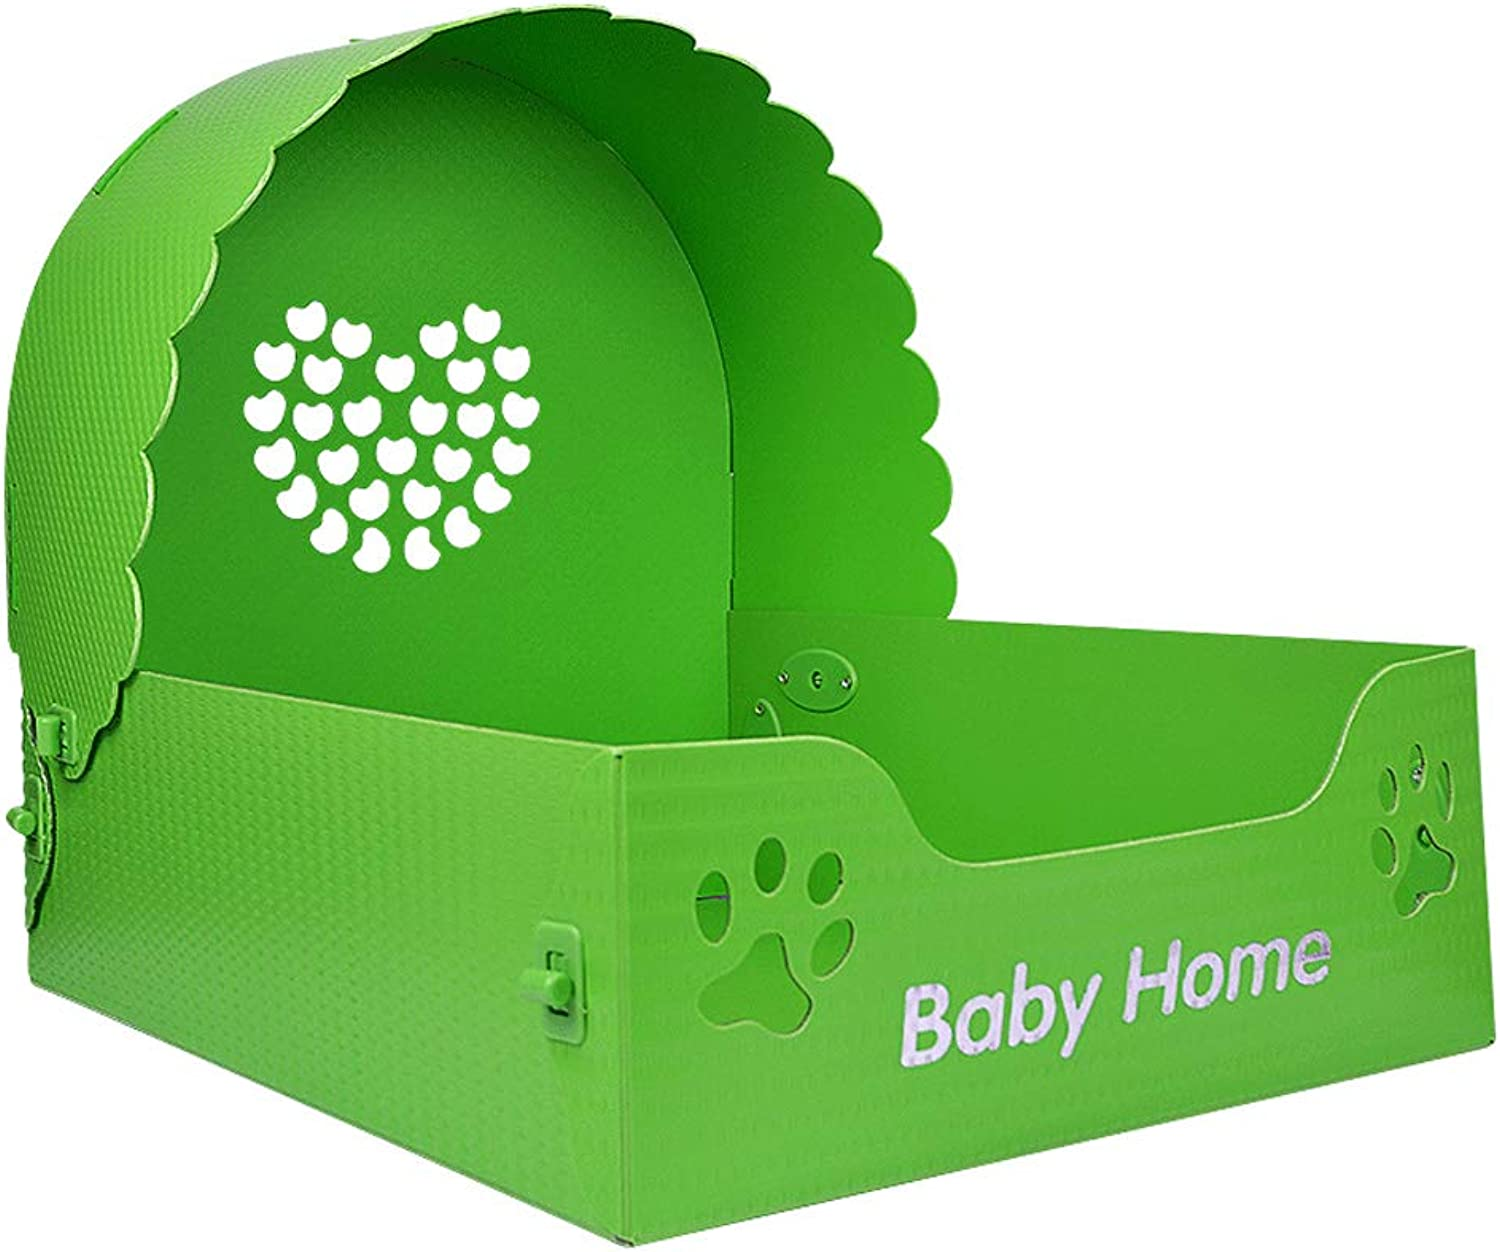 LITING Kennel Removable And Washable Cat Princess Bed Pet Nest Cat Litter Four Seasons Bomei Dog Bed Dog Supplies Pet Bed (color   Green, Size   S 48  36  40cm)